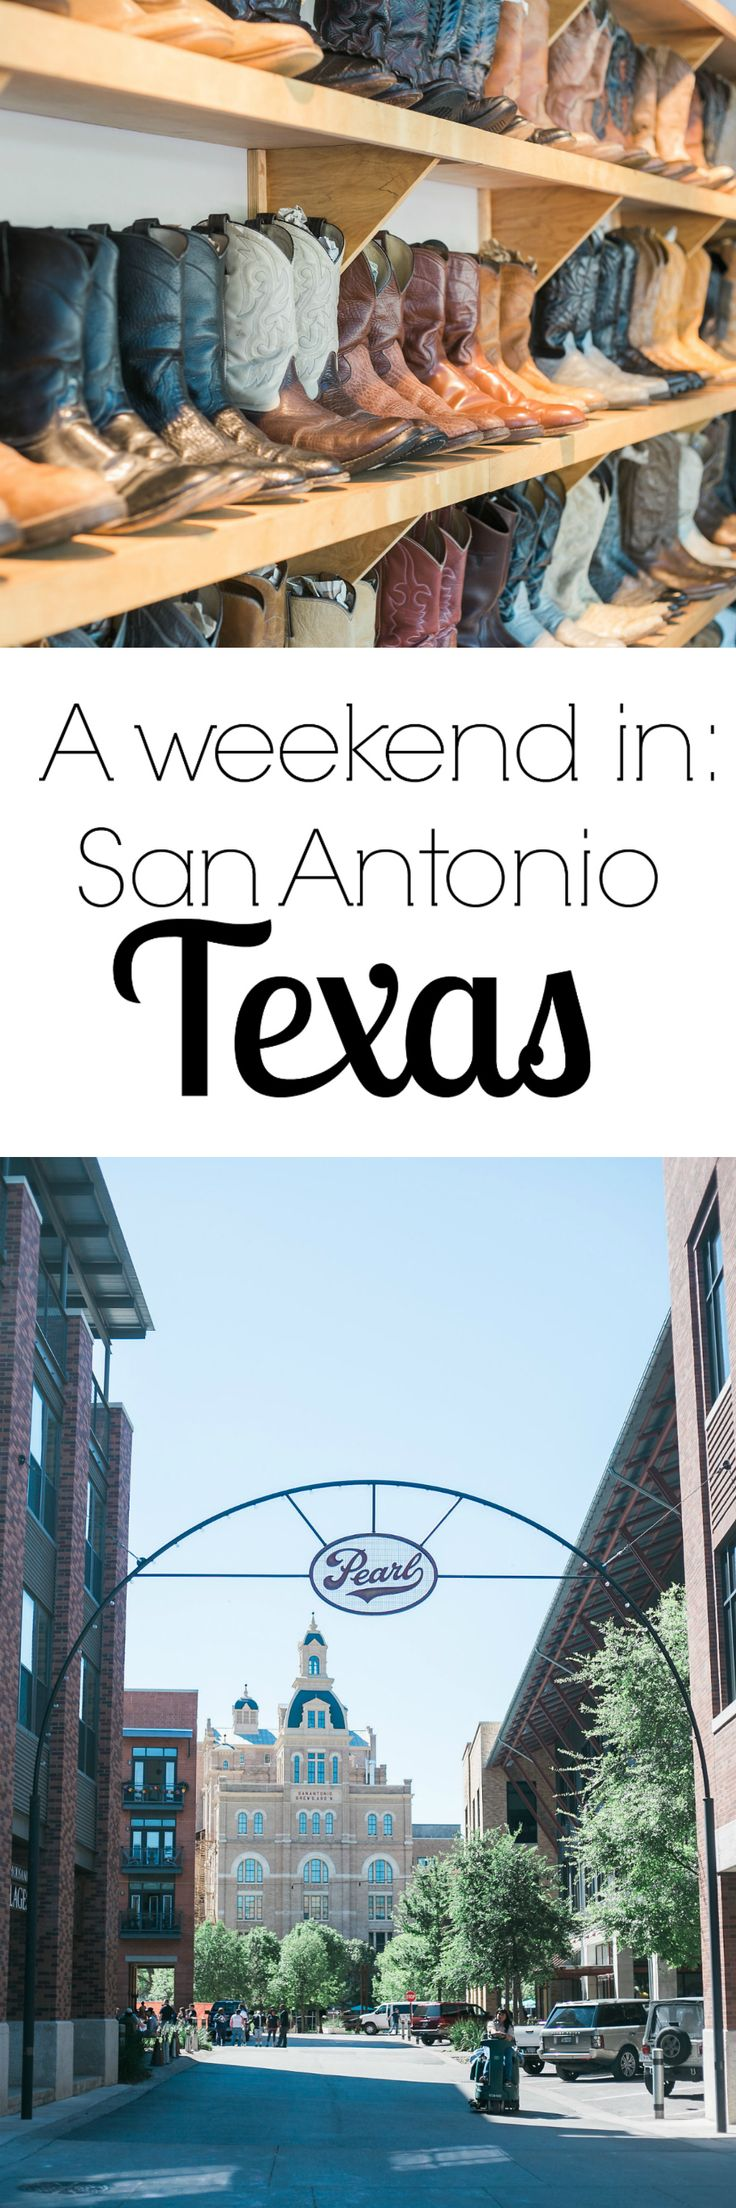 A Weekend Away in San Antonio, Texas | Culture, Food & Unique Experiences